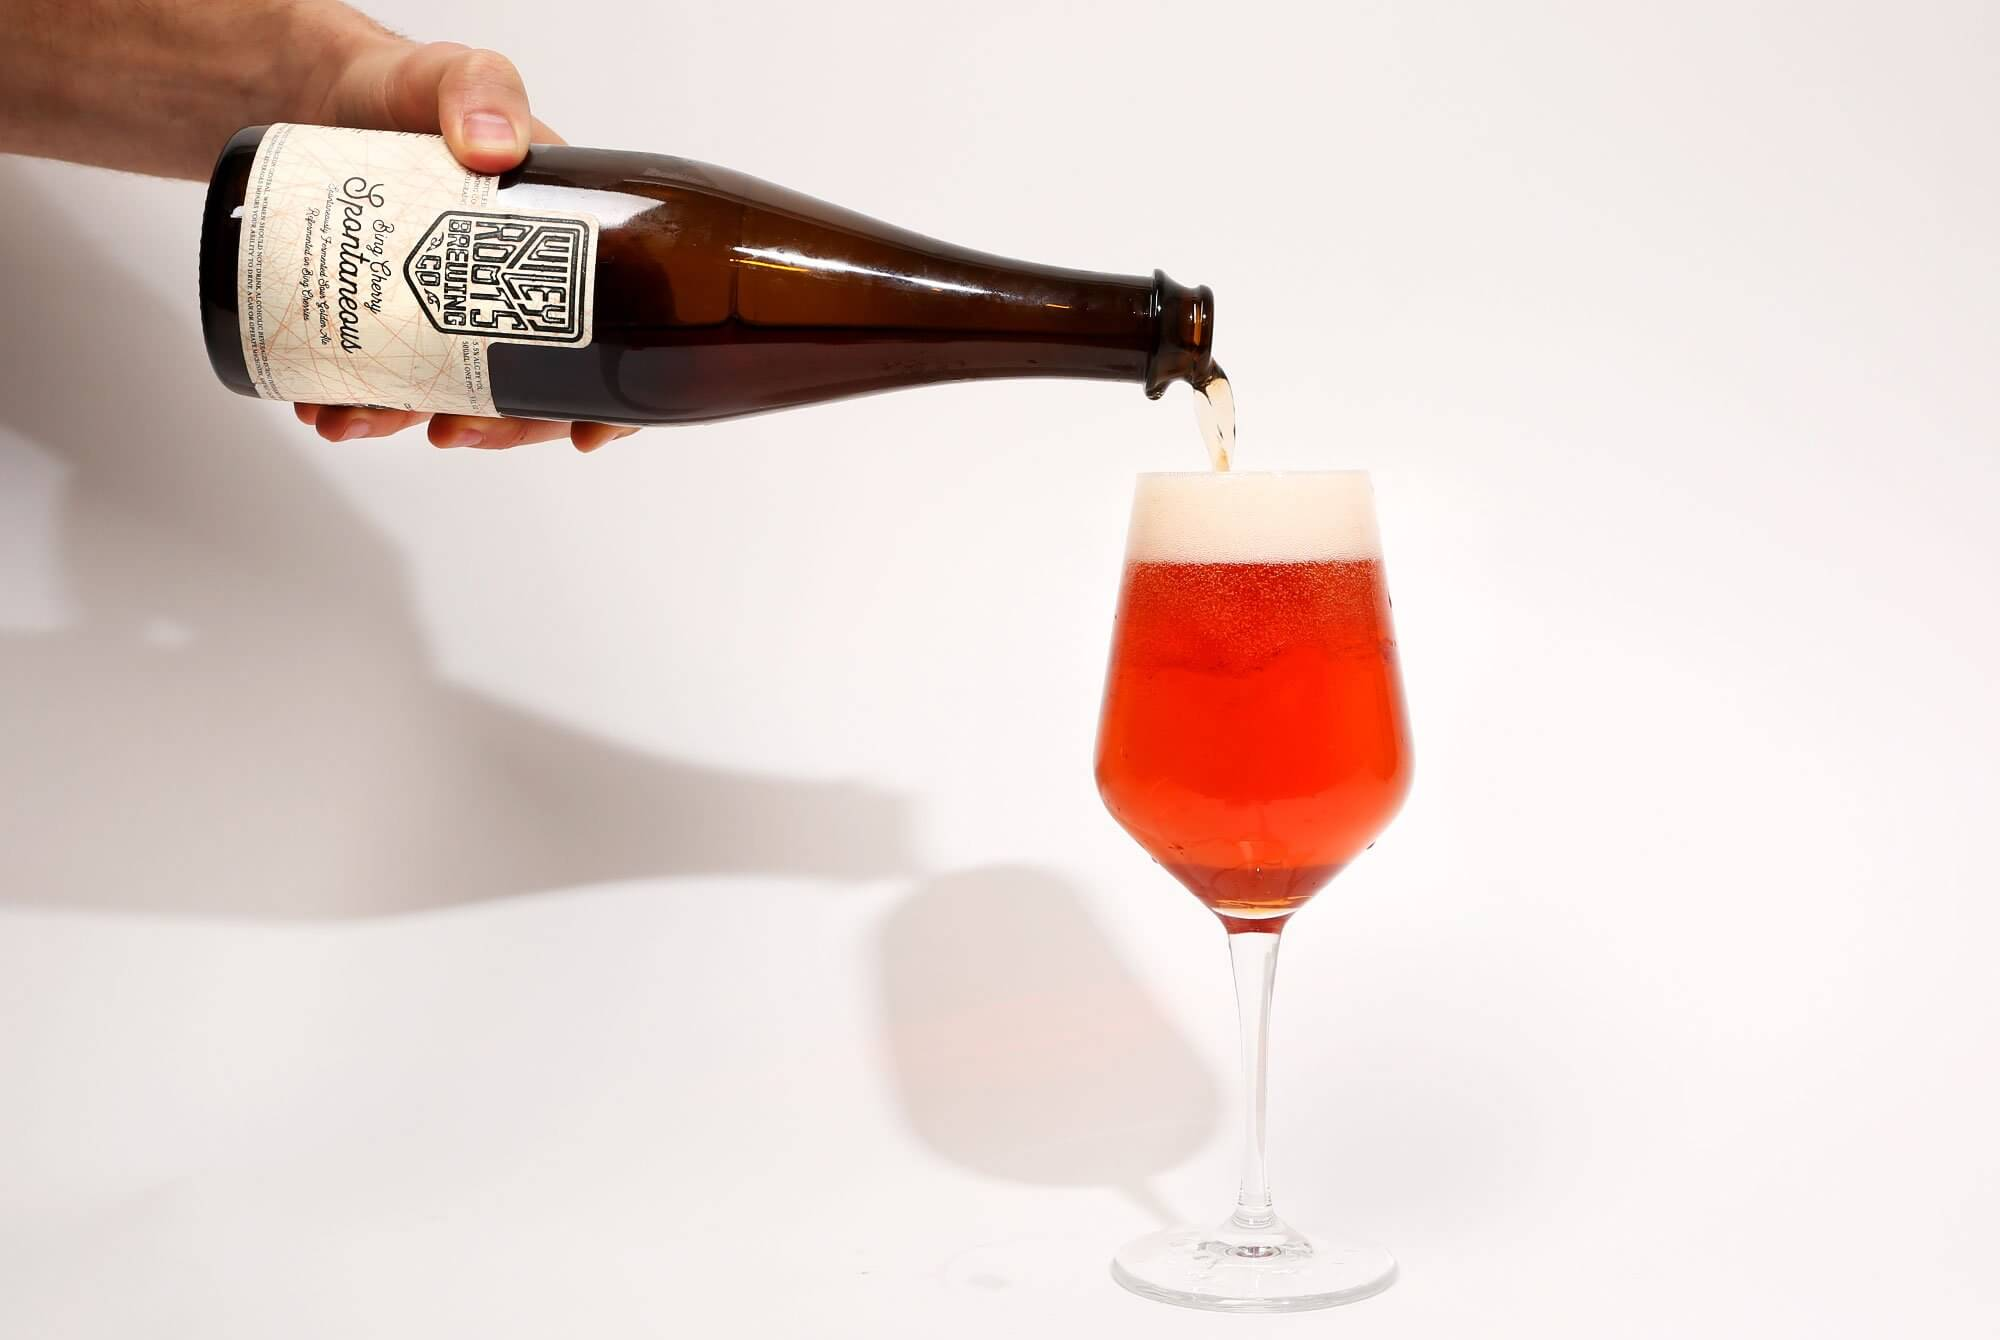 Wiley Roots Brewing Co. × Our Mutual Friend — Bing Cherry Spontaneous